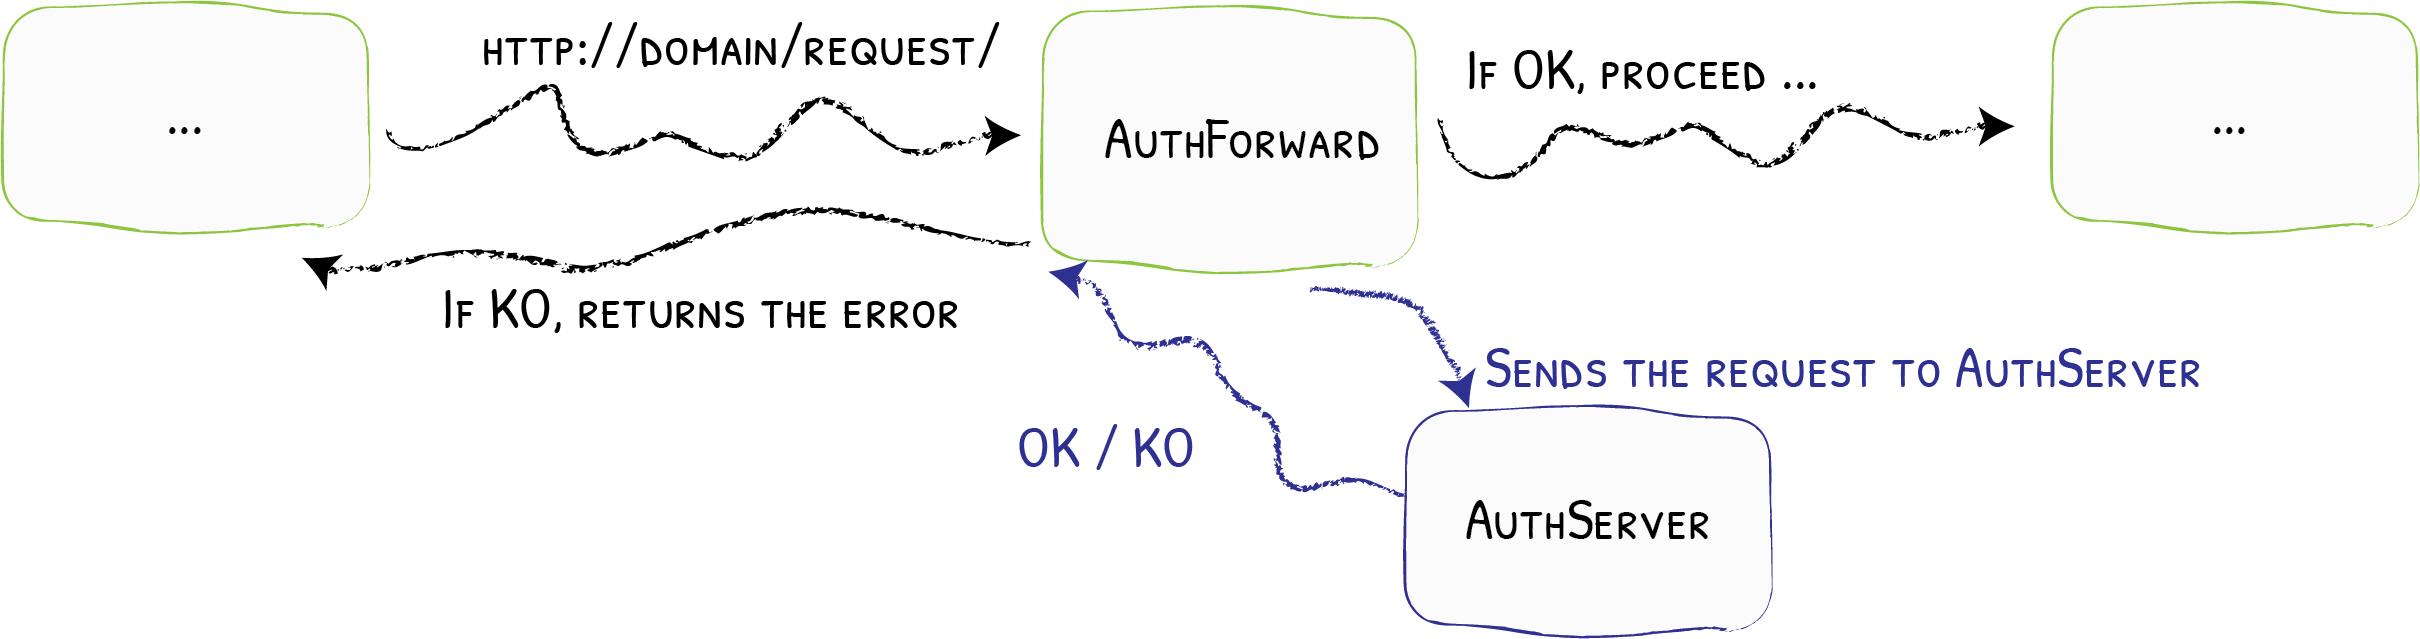 AuthForward